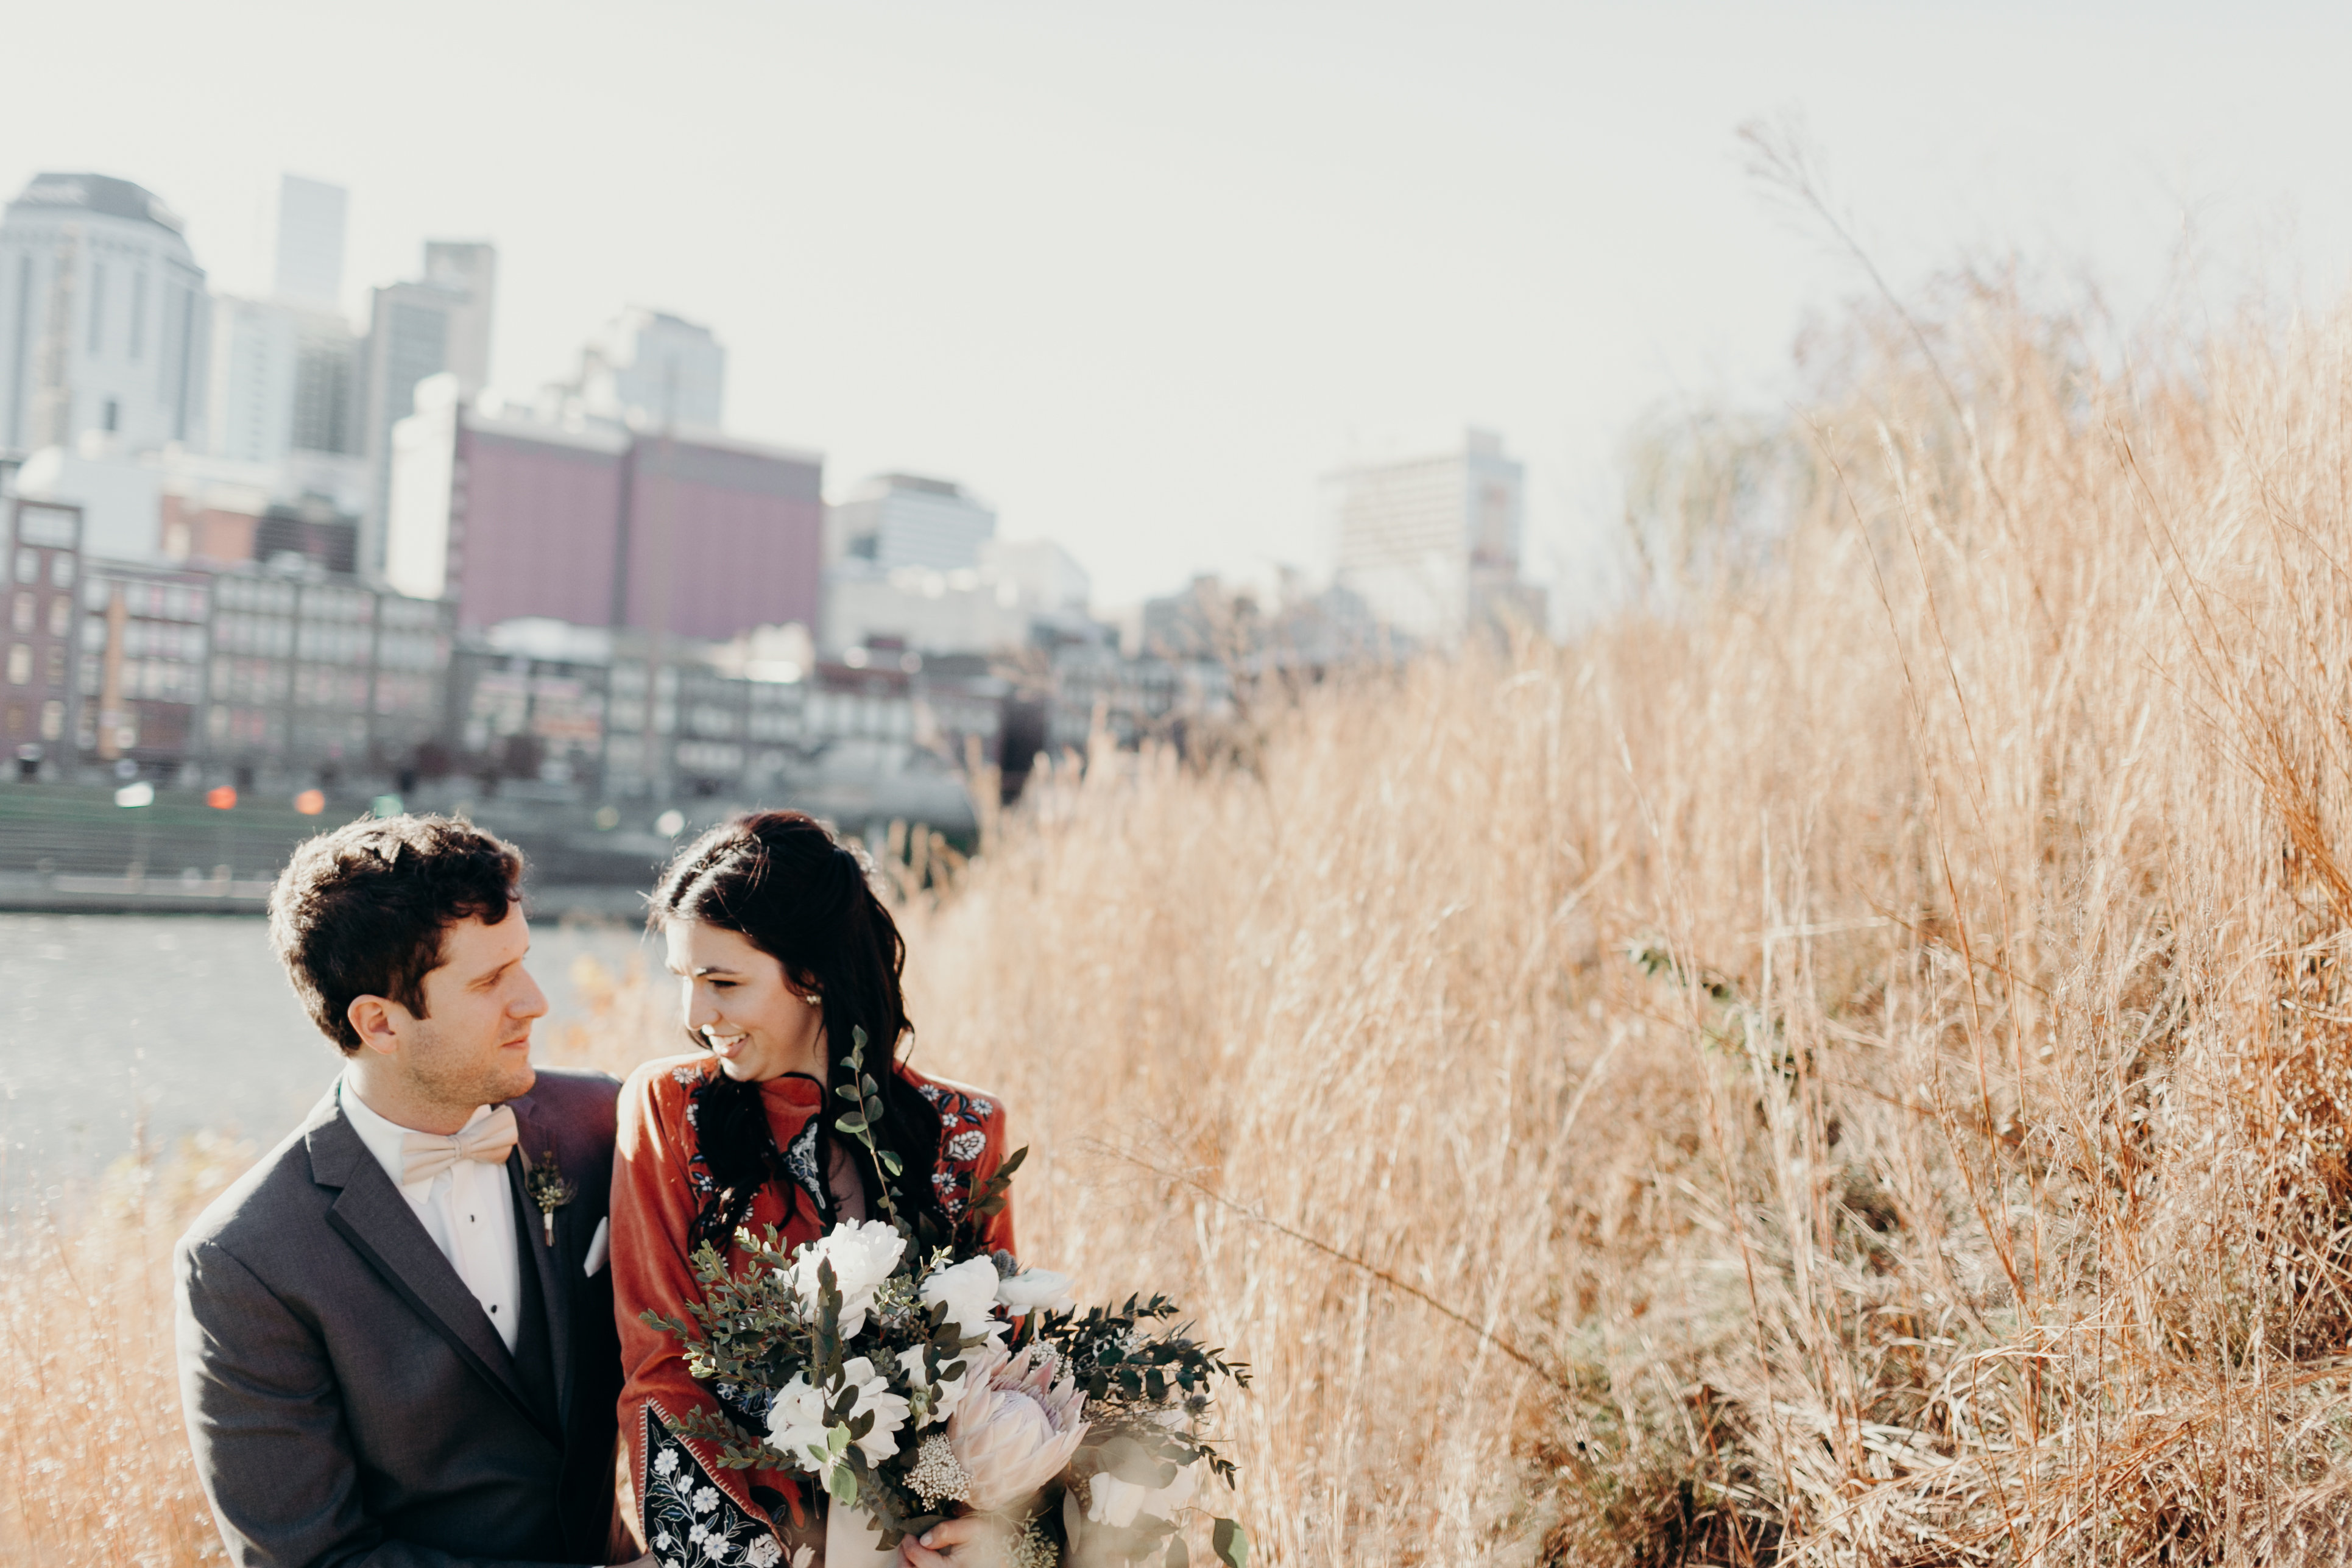 Chelsey and Parkers wedding portrait